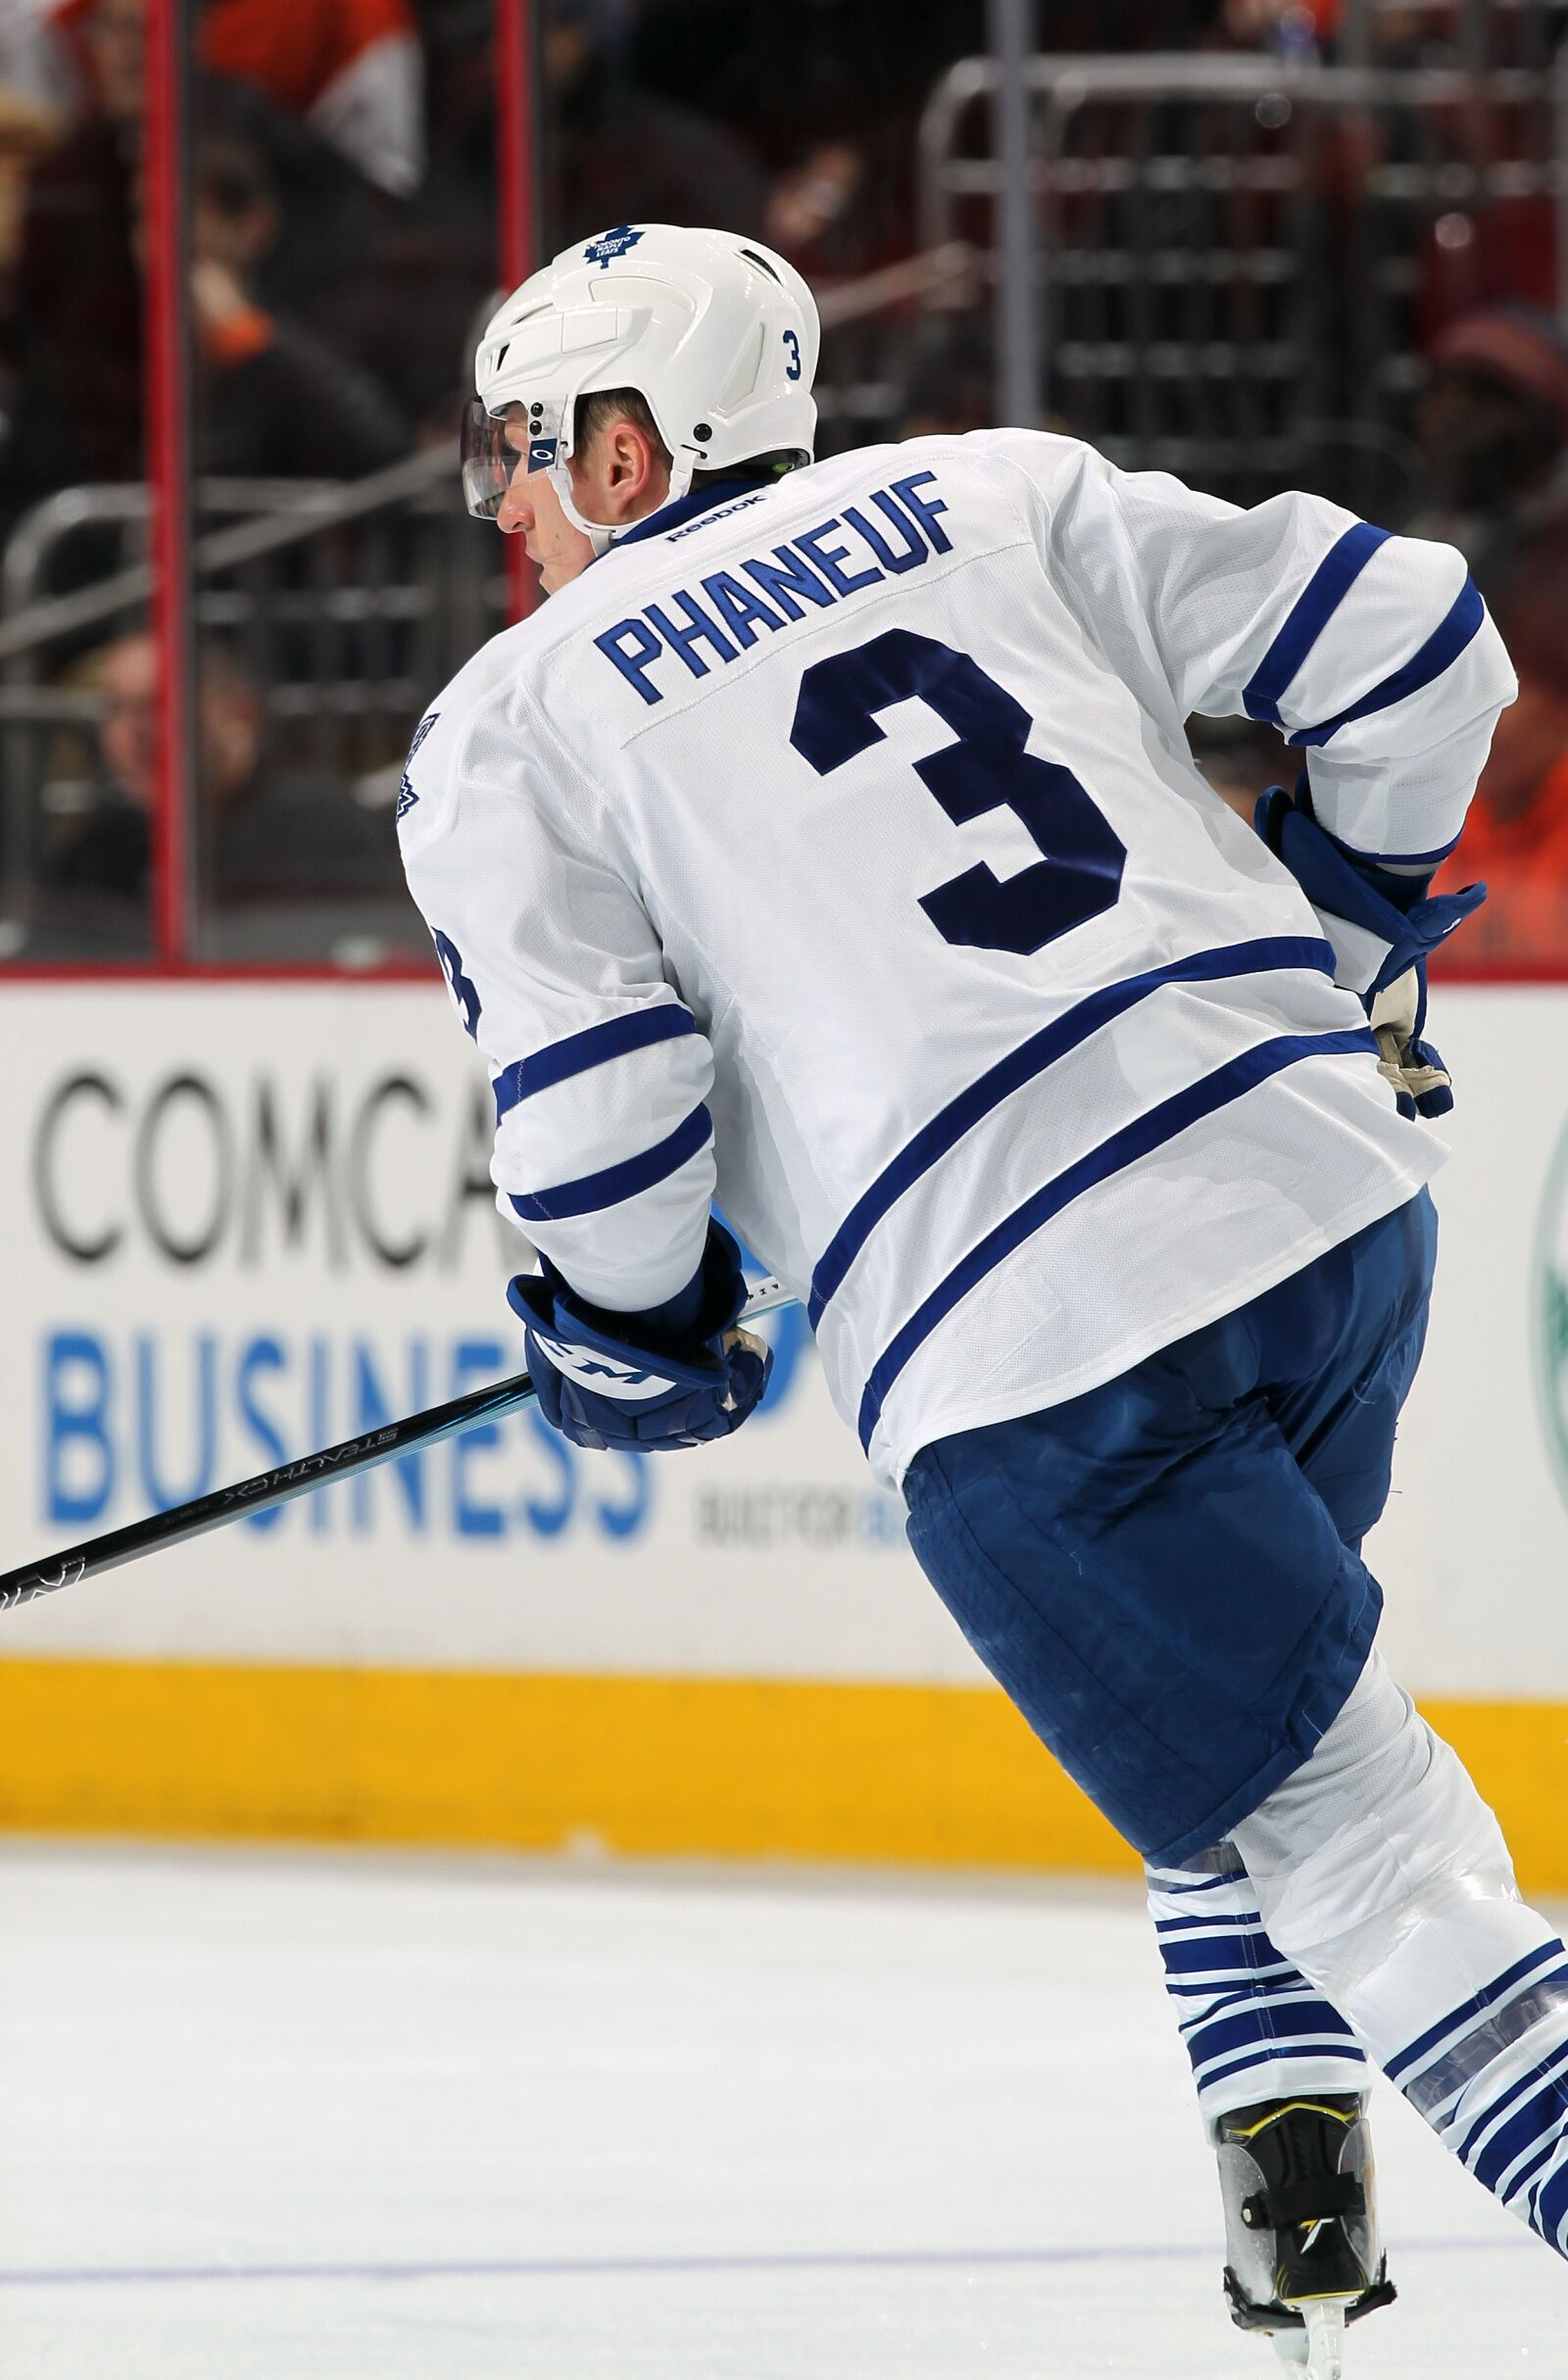 Toronto Maple Leafs Should 100% Sign Dion Phaneuf